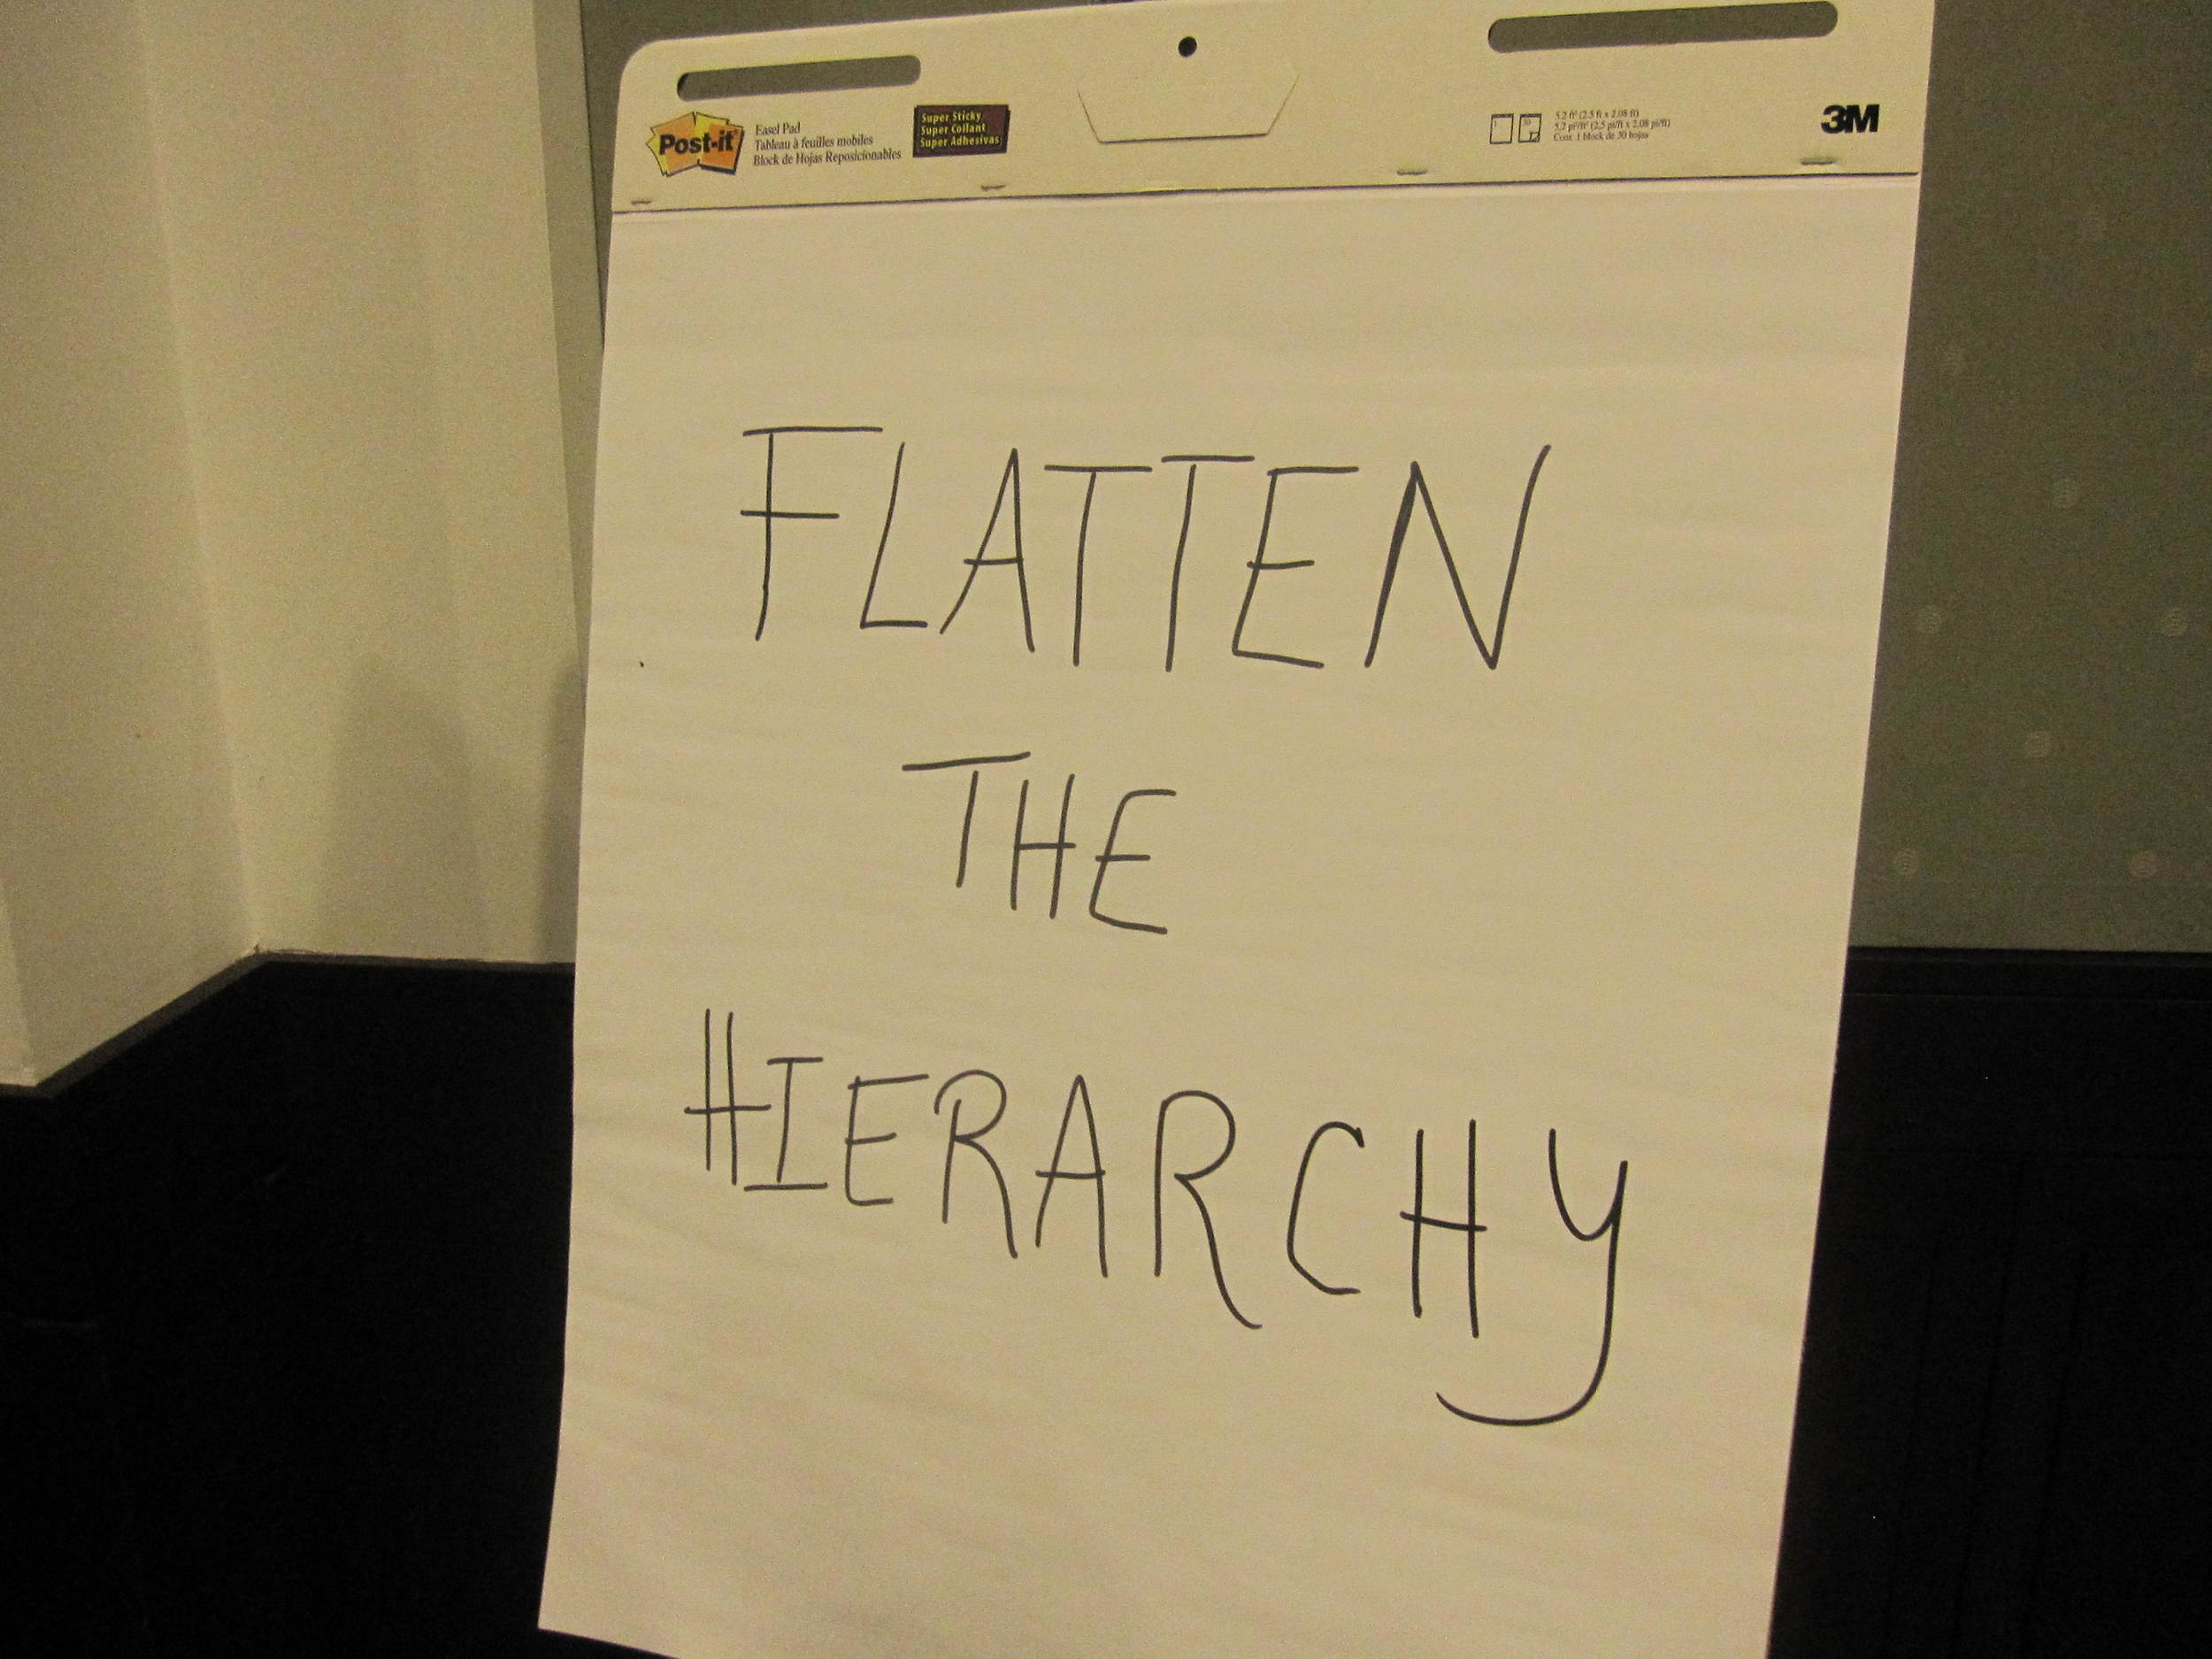 Flatten the Hierarchy!